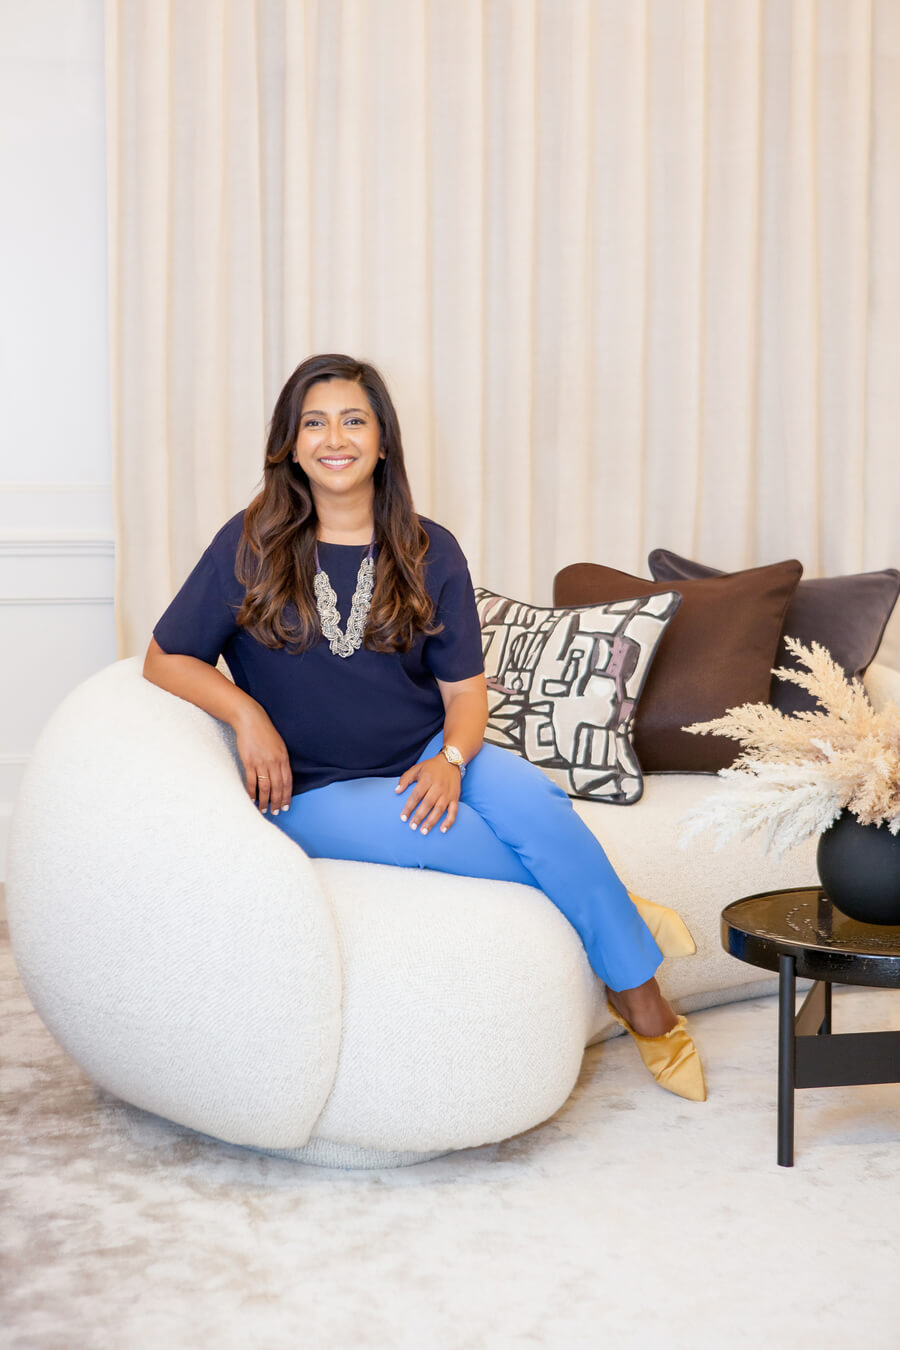 Exclusive Interview With Charu Gandhi From Elicyon